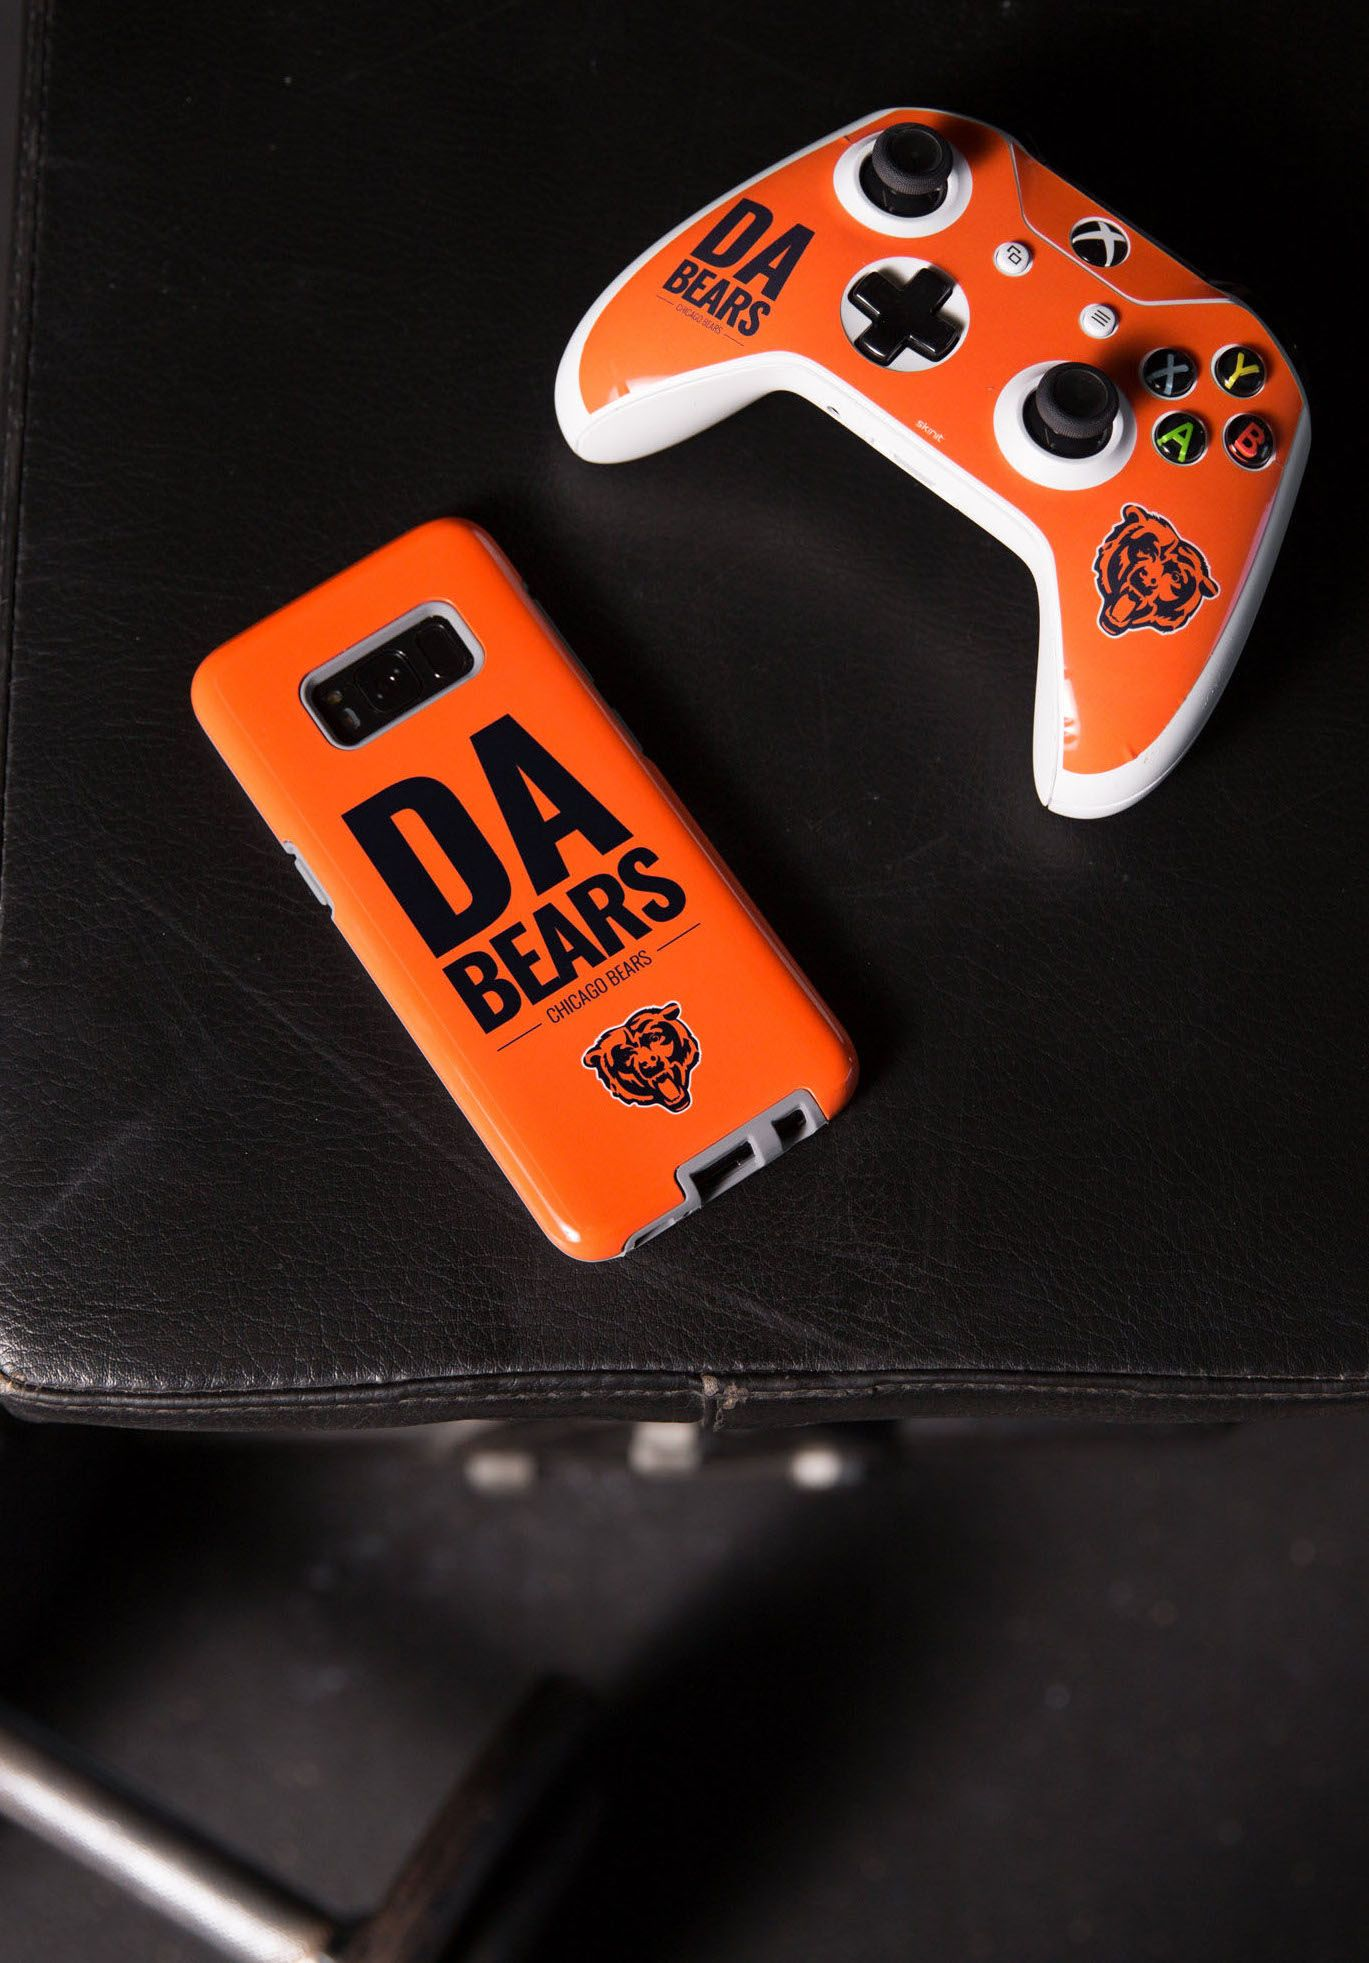 Get Your Game On Bears Dabears Xbox Console Controller Controllerskins Nfl Football Gamingskins Nfl Team Slogans